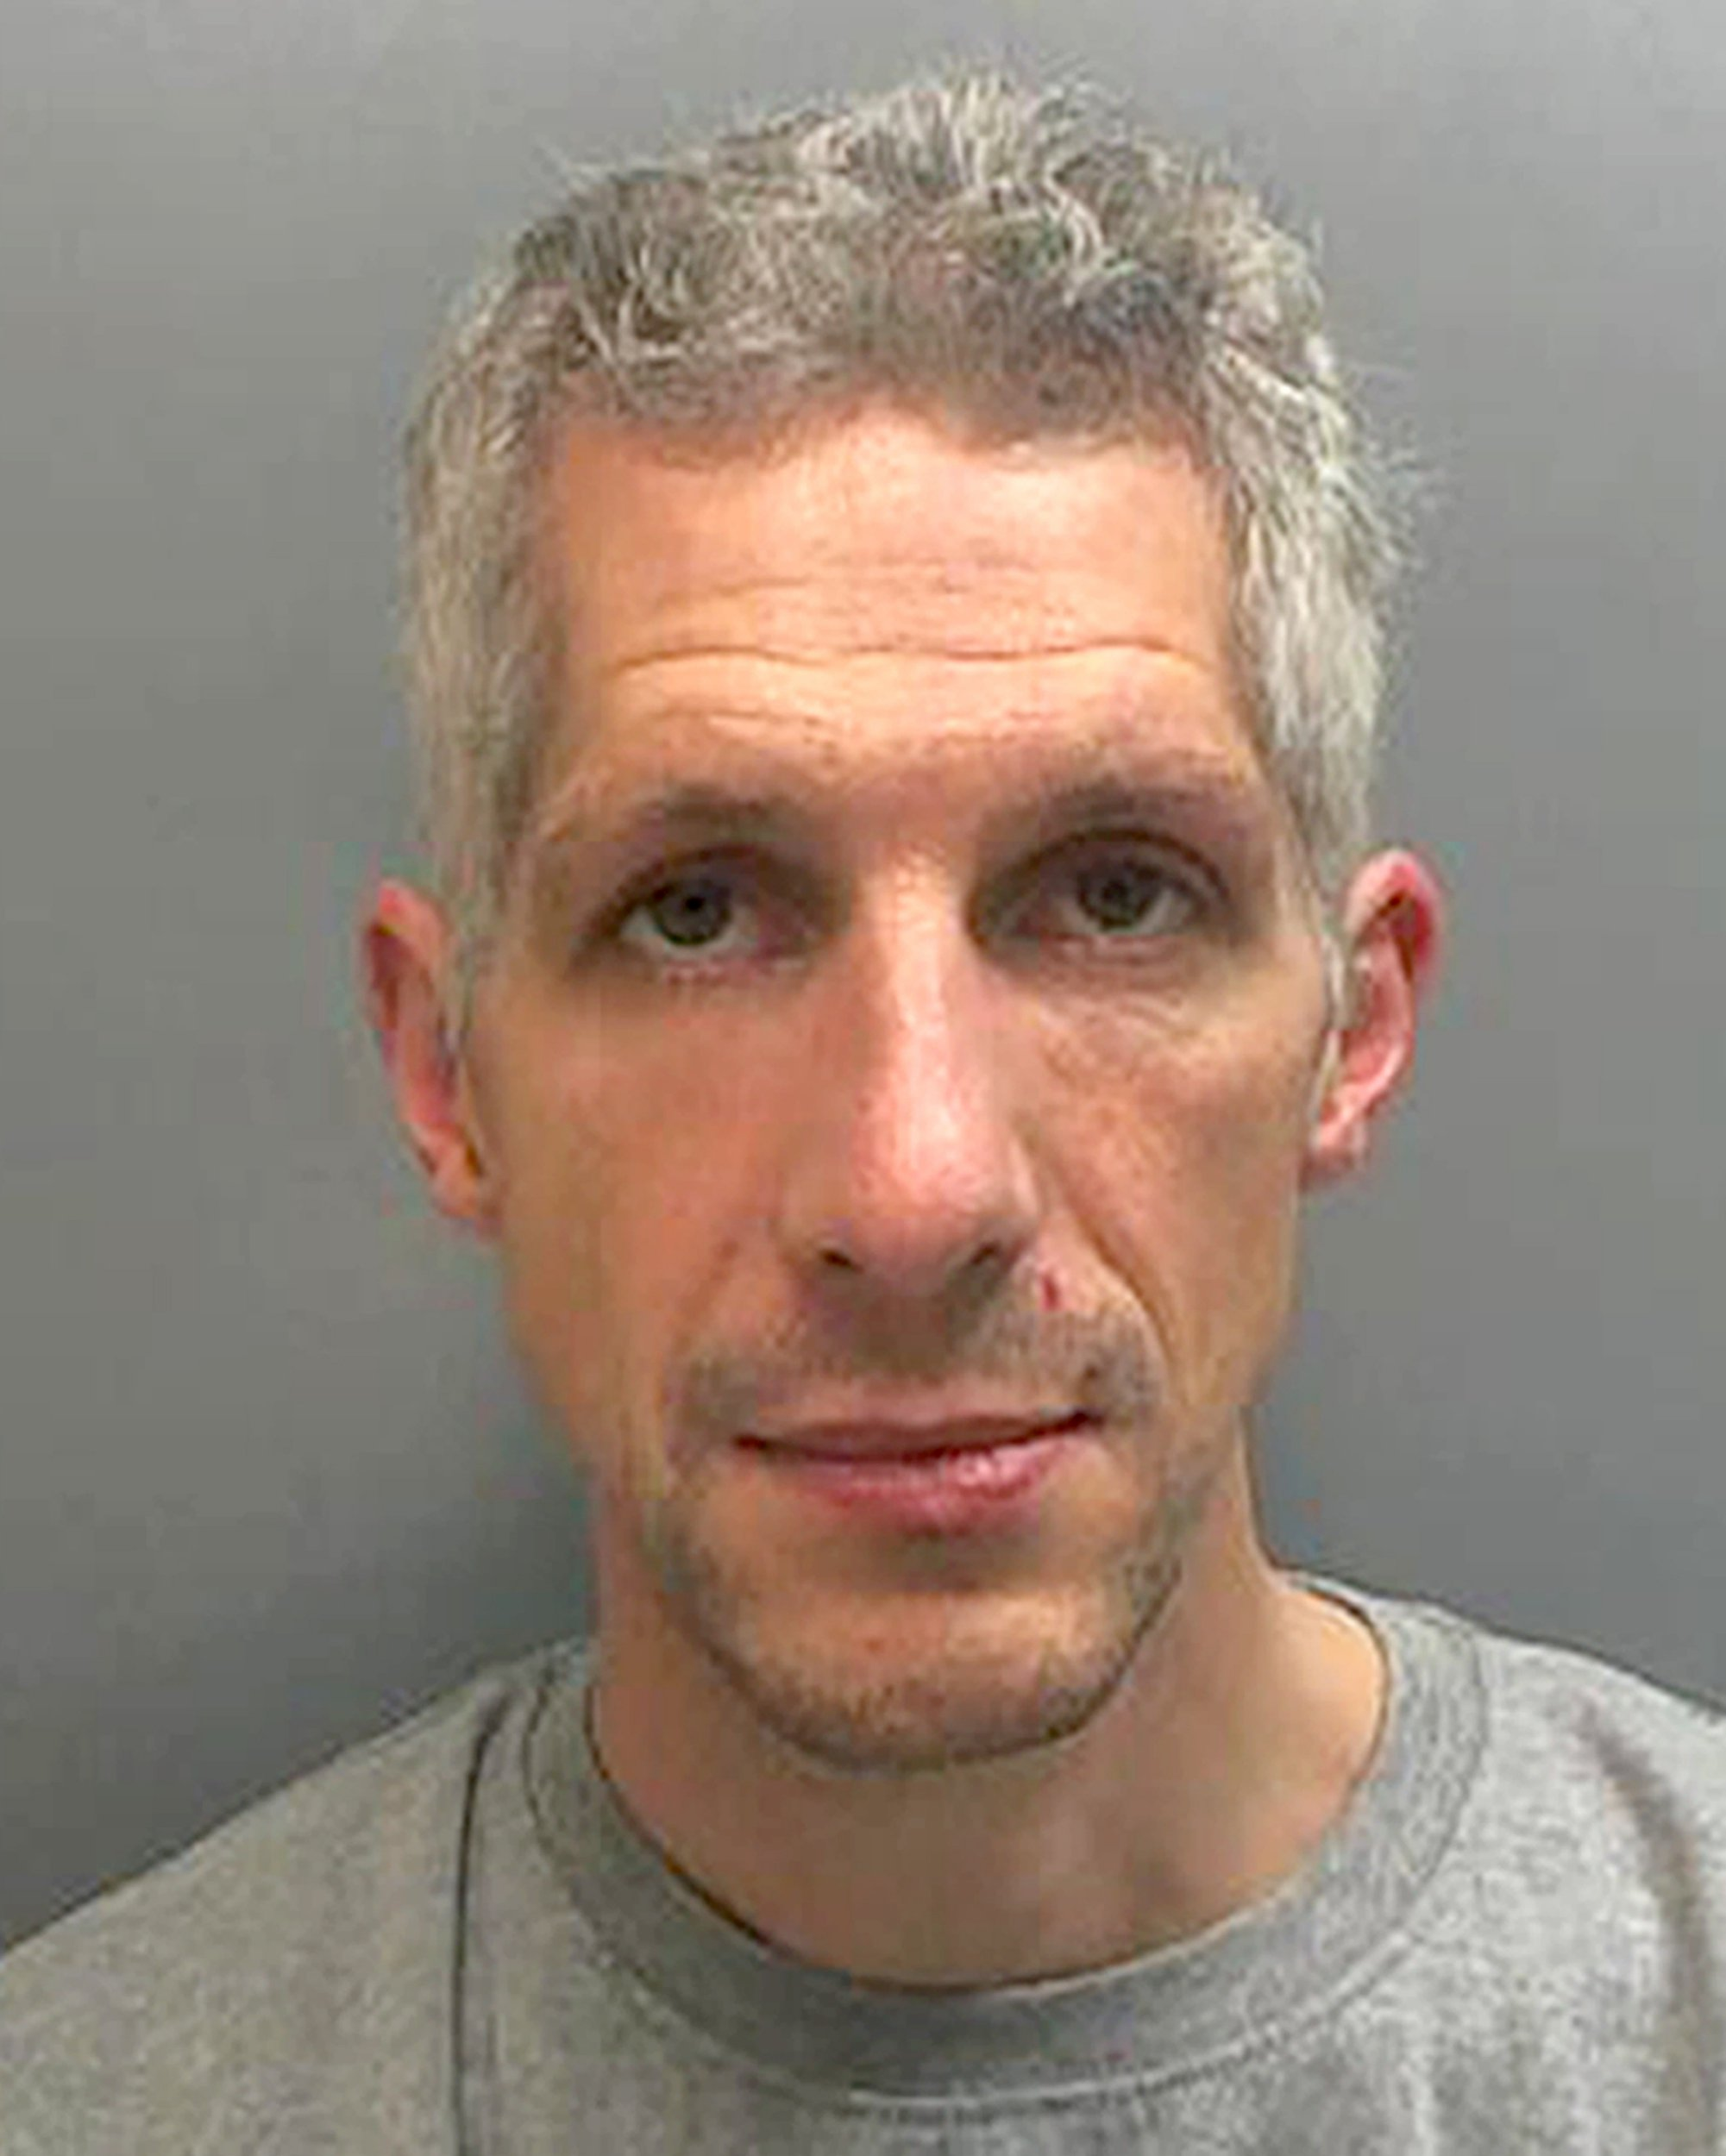 Undated handout photo issued by Cheshire Police of police inspector Darren McKie who is due to be sentenced for the murder of his detective constable wife, whose body was found in a lake. PRESS ASSOCIATION Photo. Issue date: Tuesday March 27, 2018. McKie, 43, faces life in prison after he was found guilty at Chester Crown Court of the murder of wife Leanne, 39. See PA story COURTS Poynton. Photo credit should read: Cheshire Police/PA Wire NOTE TO EDITORS: This handout photo may only be used in for editorial reporting purposes for the contemporaneous illustration of events, things or the people in the image or facts mentioned in the caption. Reuse of the picture may require further permission from the copyright holder.